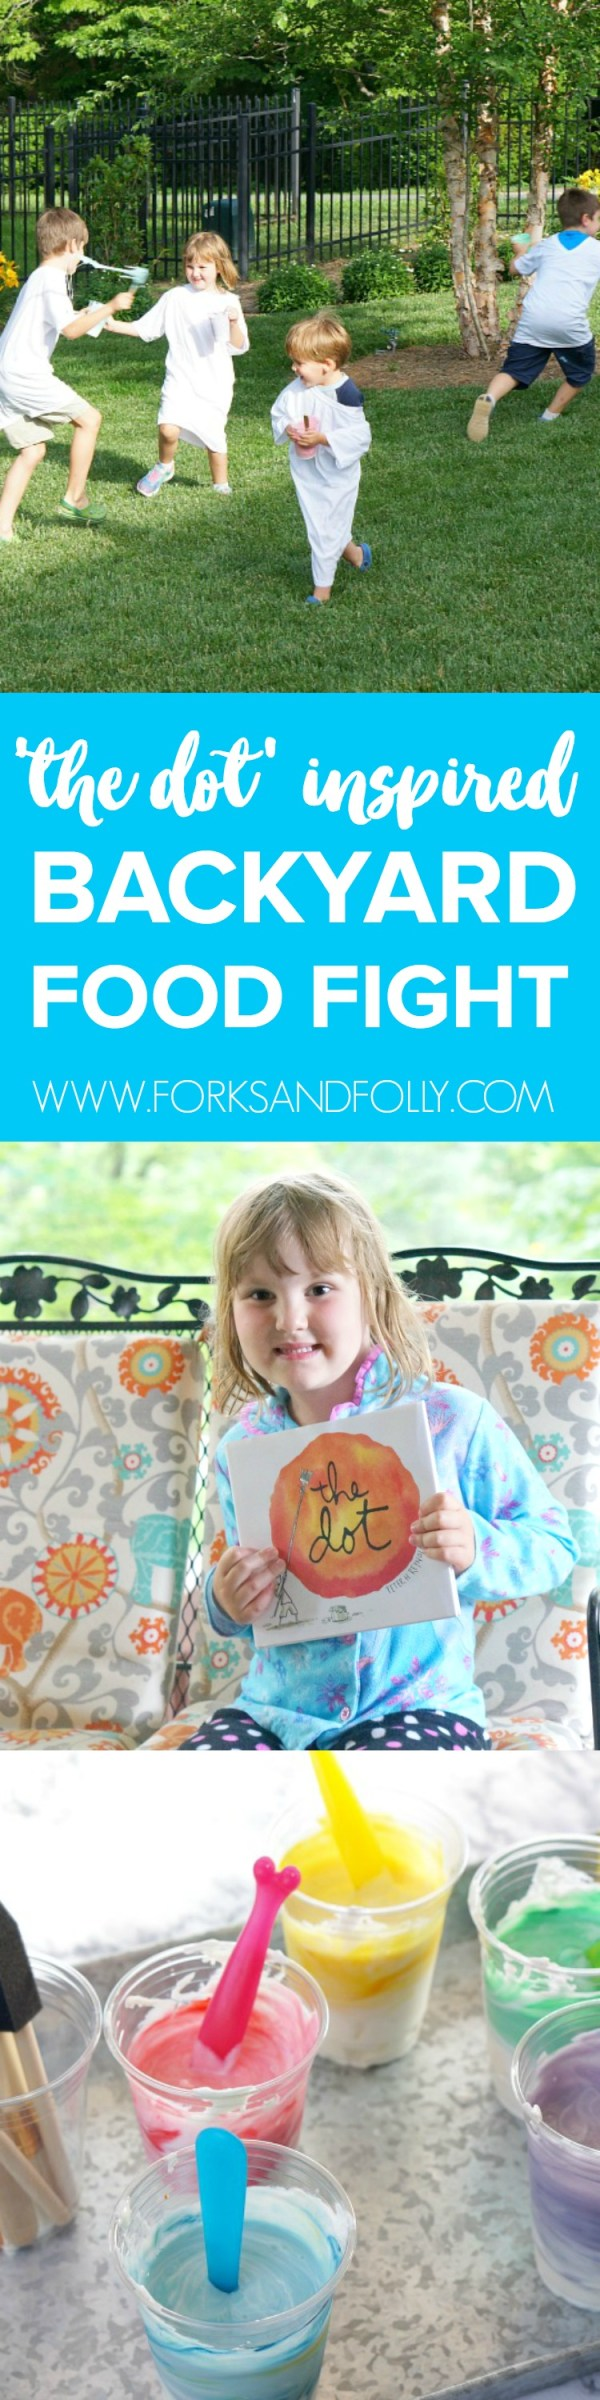 Let loose this summer with an old-fashioned backyard food fight! We've got the supplies for the fun and clean-up to make this a summer bucket list item you'll definitely want to plan on doing with your kids!!